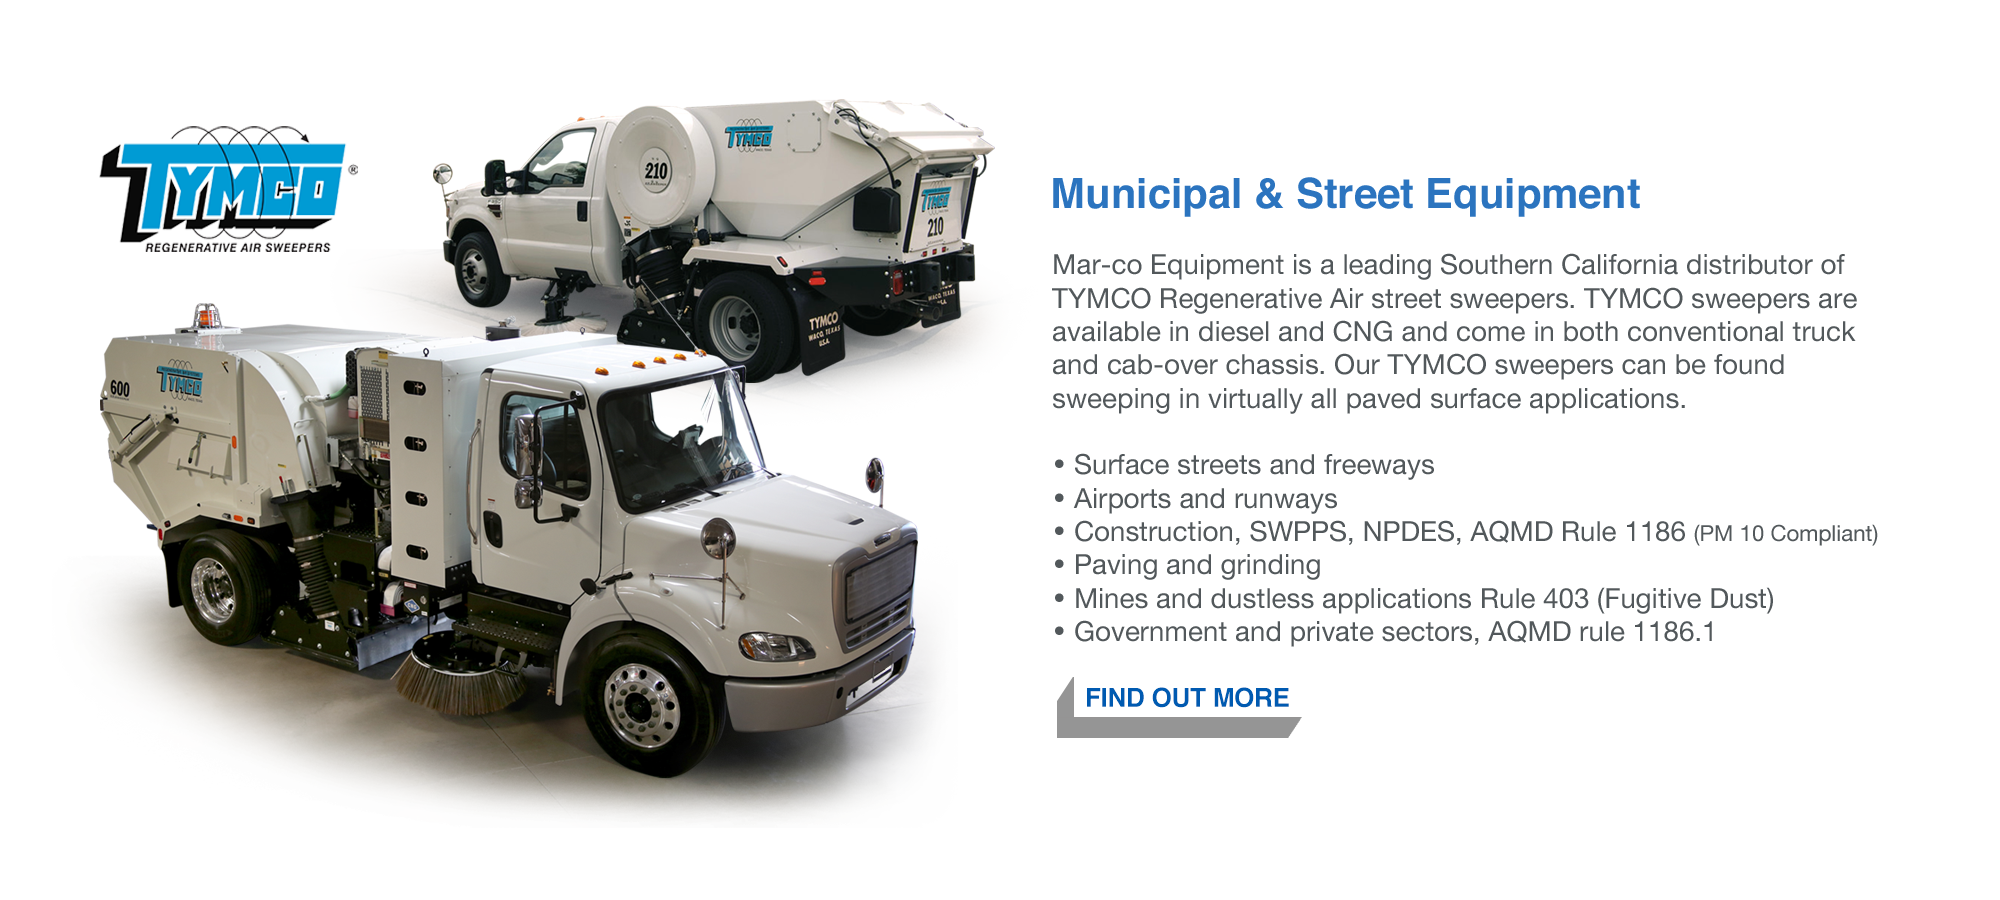 Mar-co Street Sweepers, Tymco Street Sweepers